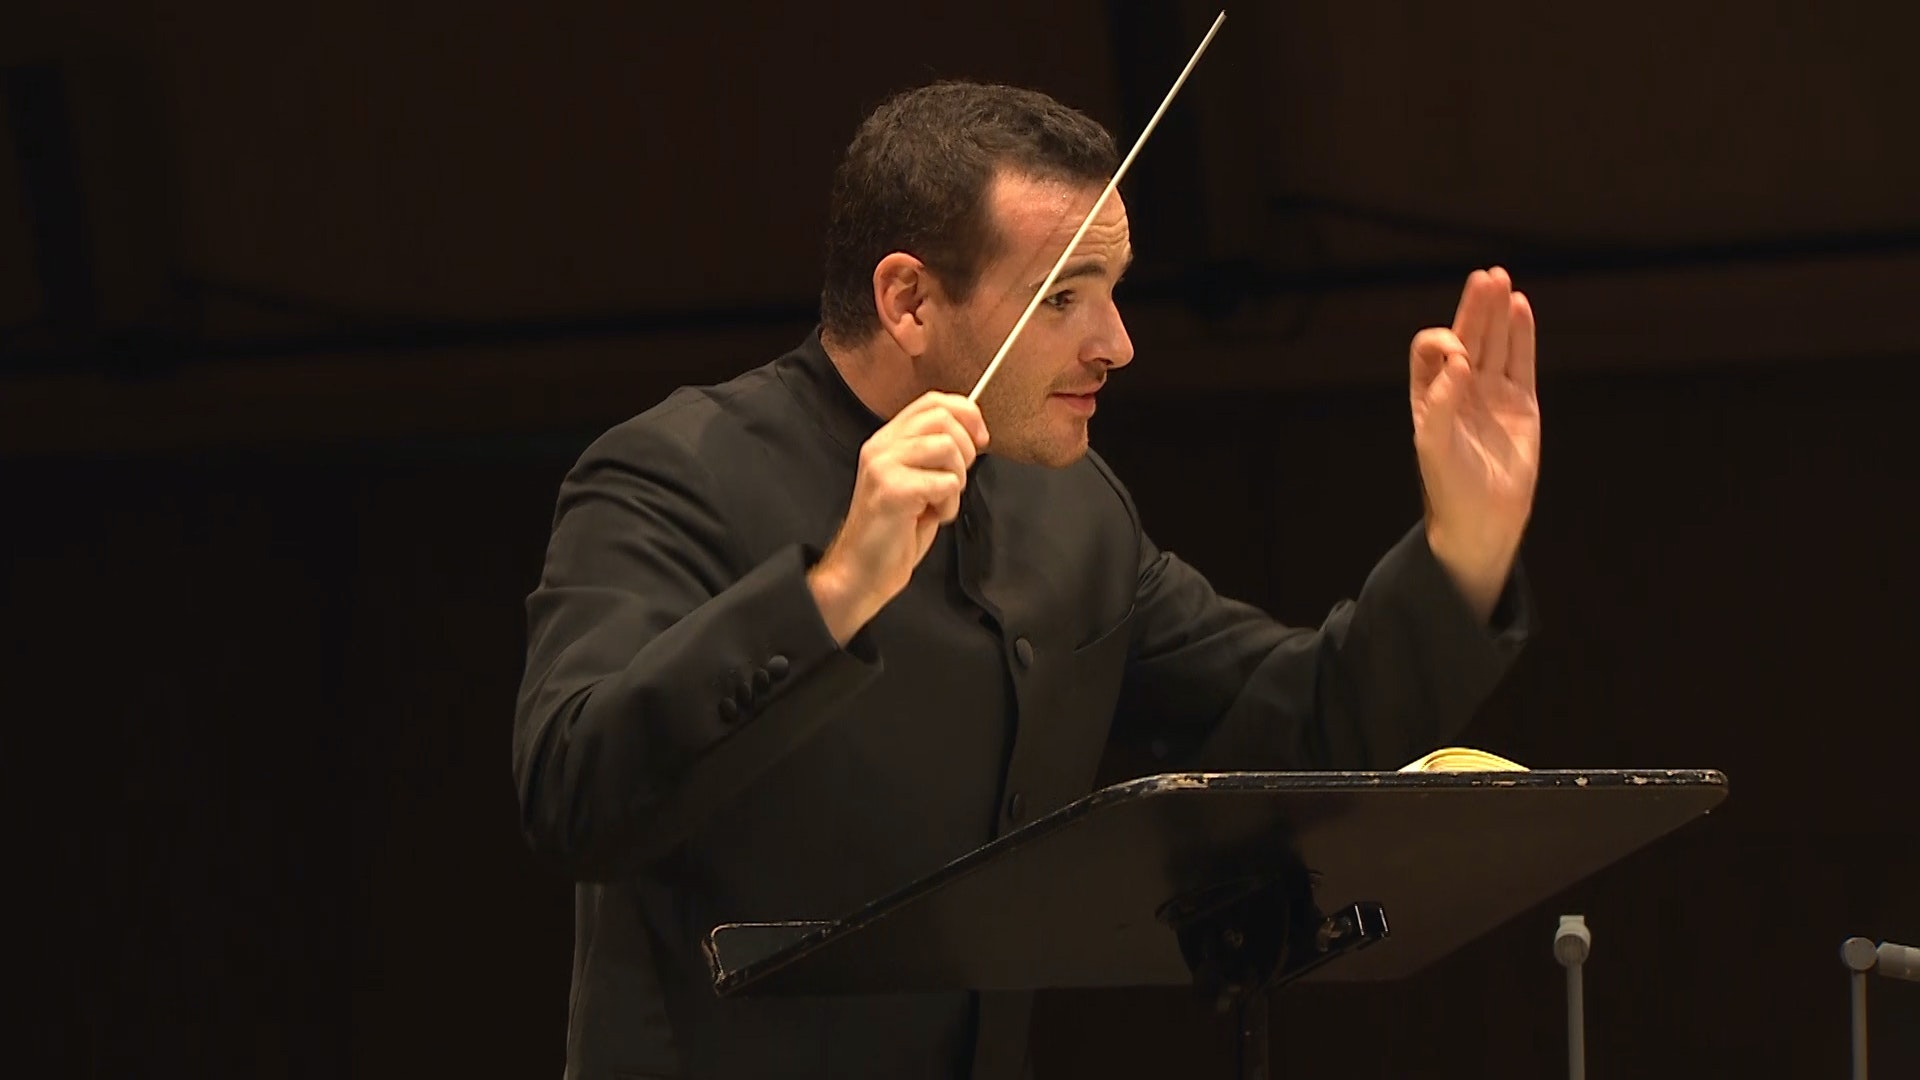 Lionel Bringuier conducts Dean and Beethoven